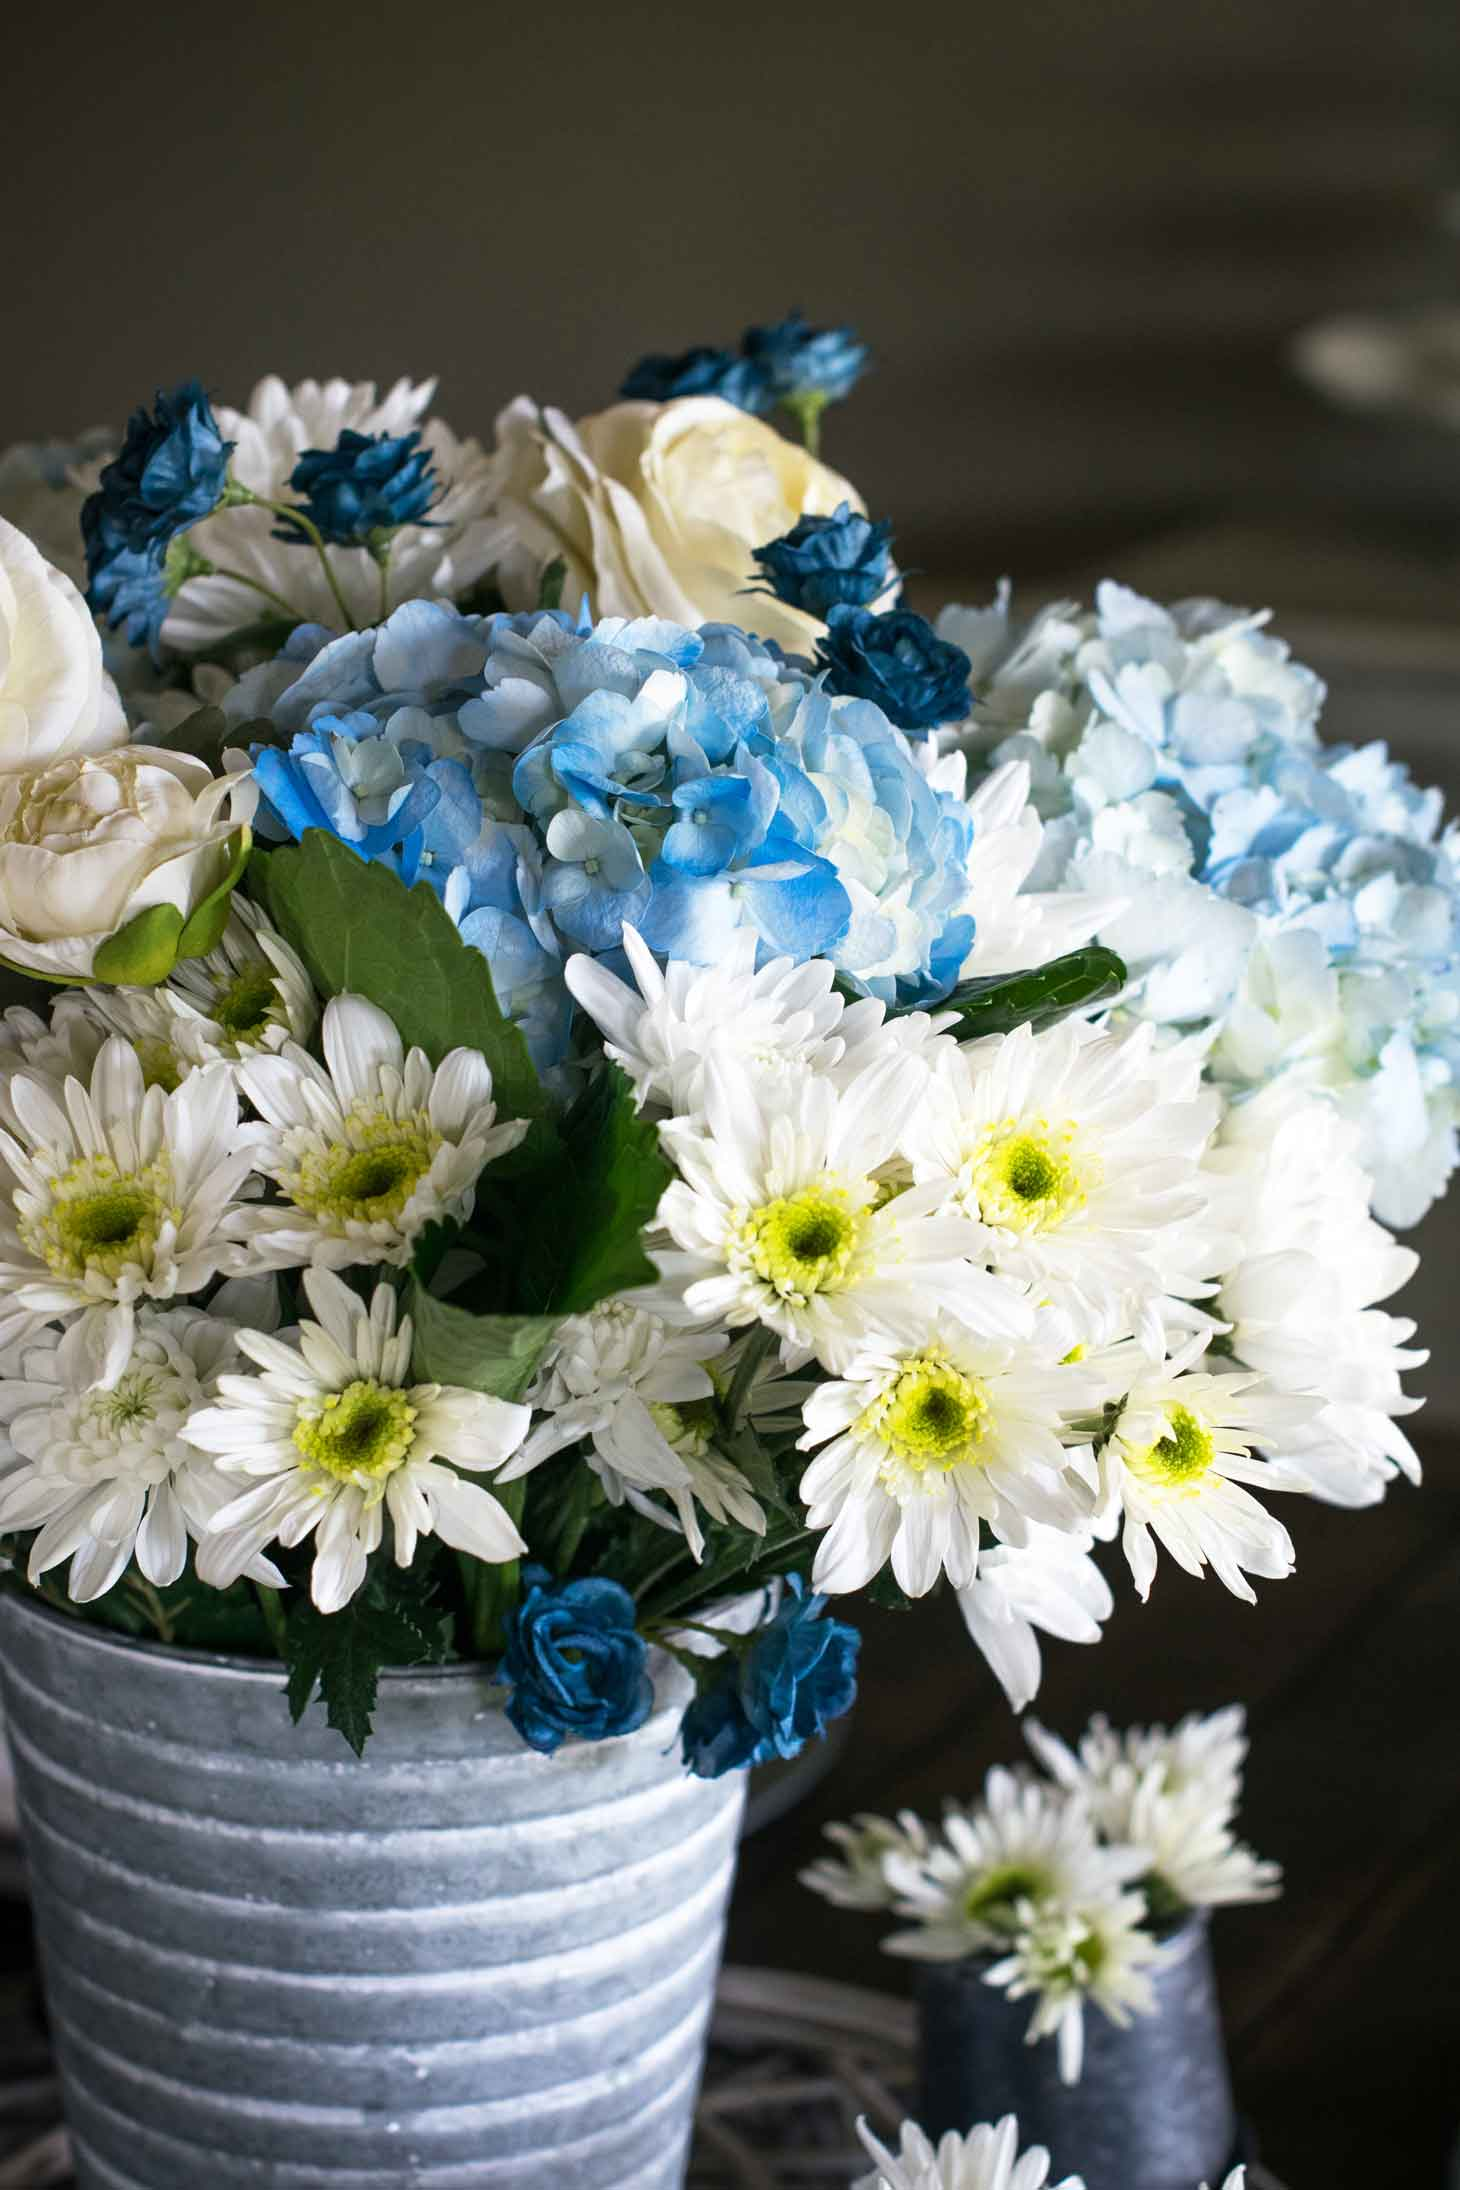 blue and white hydrangea, Euro pops, and more for a spring floral centerpiece